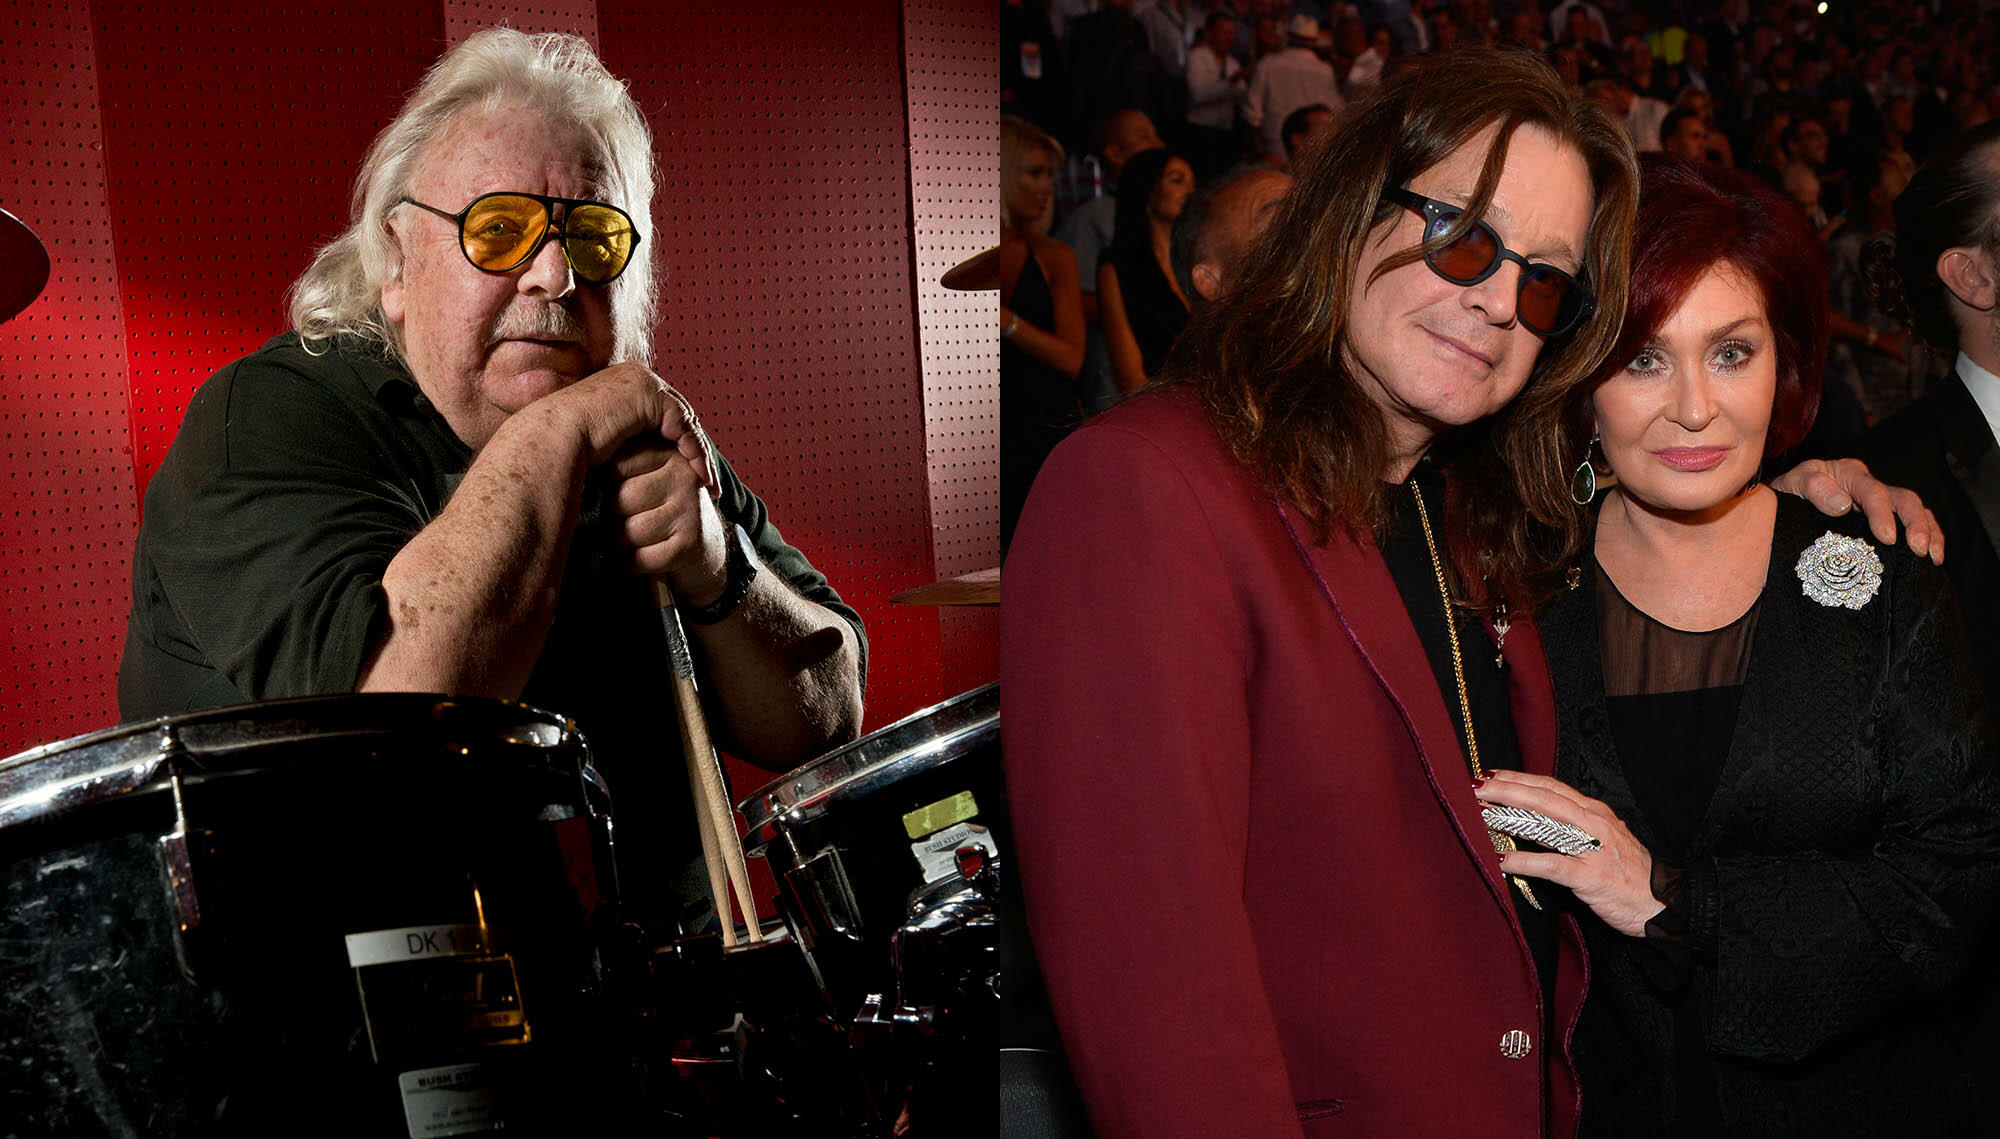 Drummer Lee Kerslake Makes Dying Request of Ozzy Osbourne